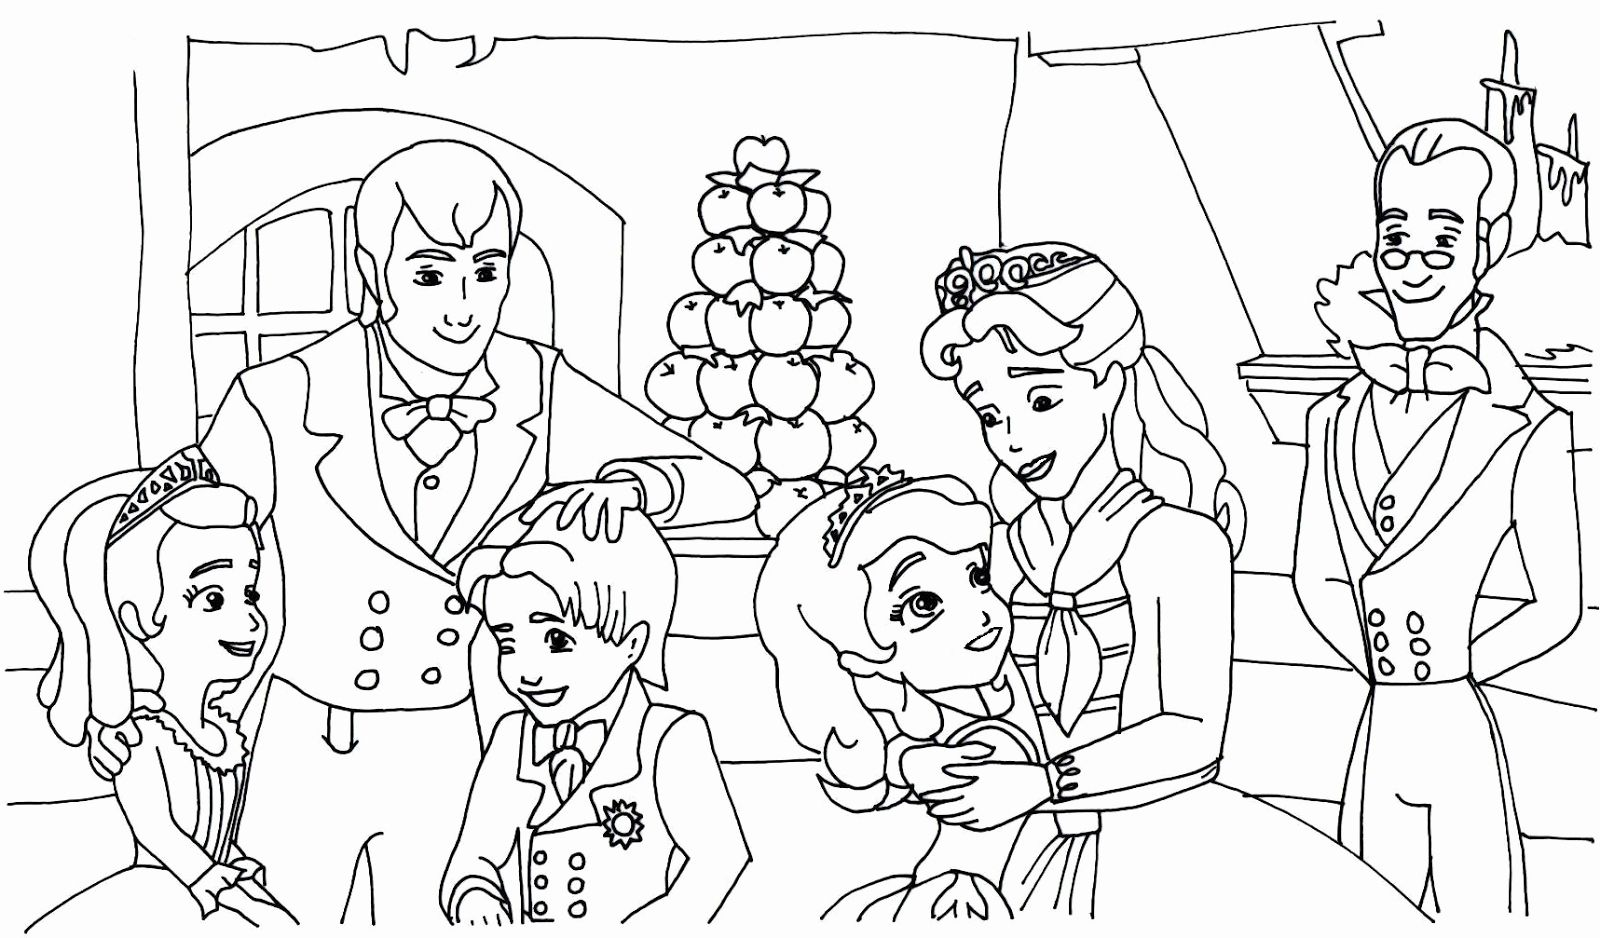 Sofia The First Coloring Book Lovely Sofia The First Coloring Pages Best Coloring Pages For Kids In 2020 Mom Coloring Pages Coloring Pages Family Coloring Pages